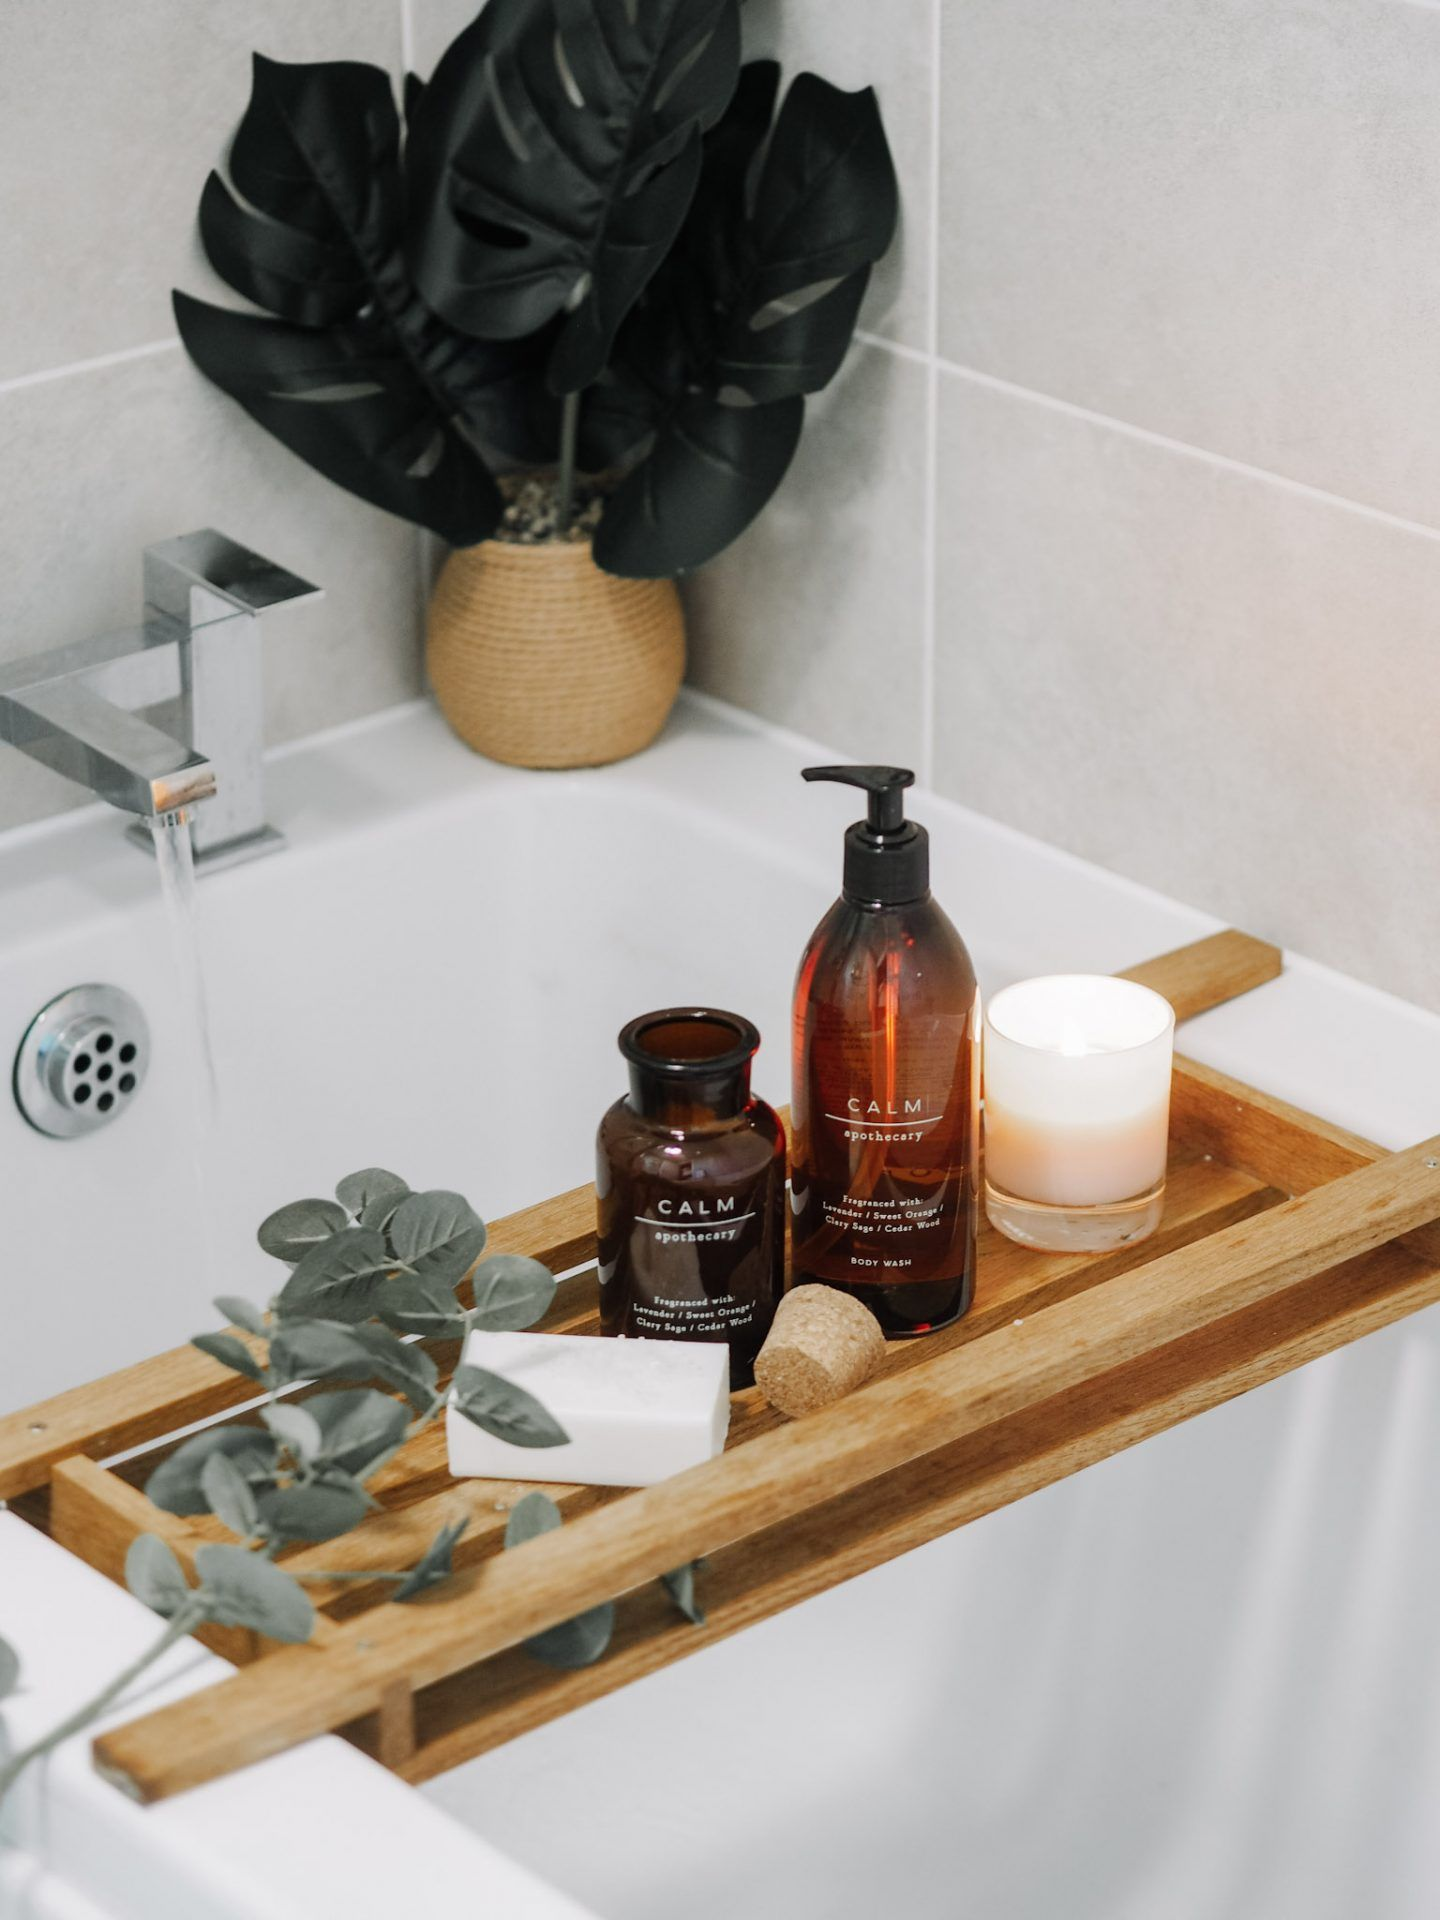 Marks & Spencer Apothecary: Super Affordable Bath & Body Range in